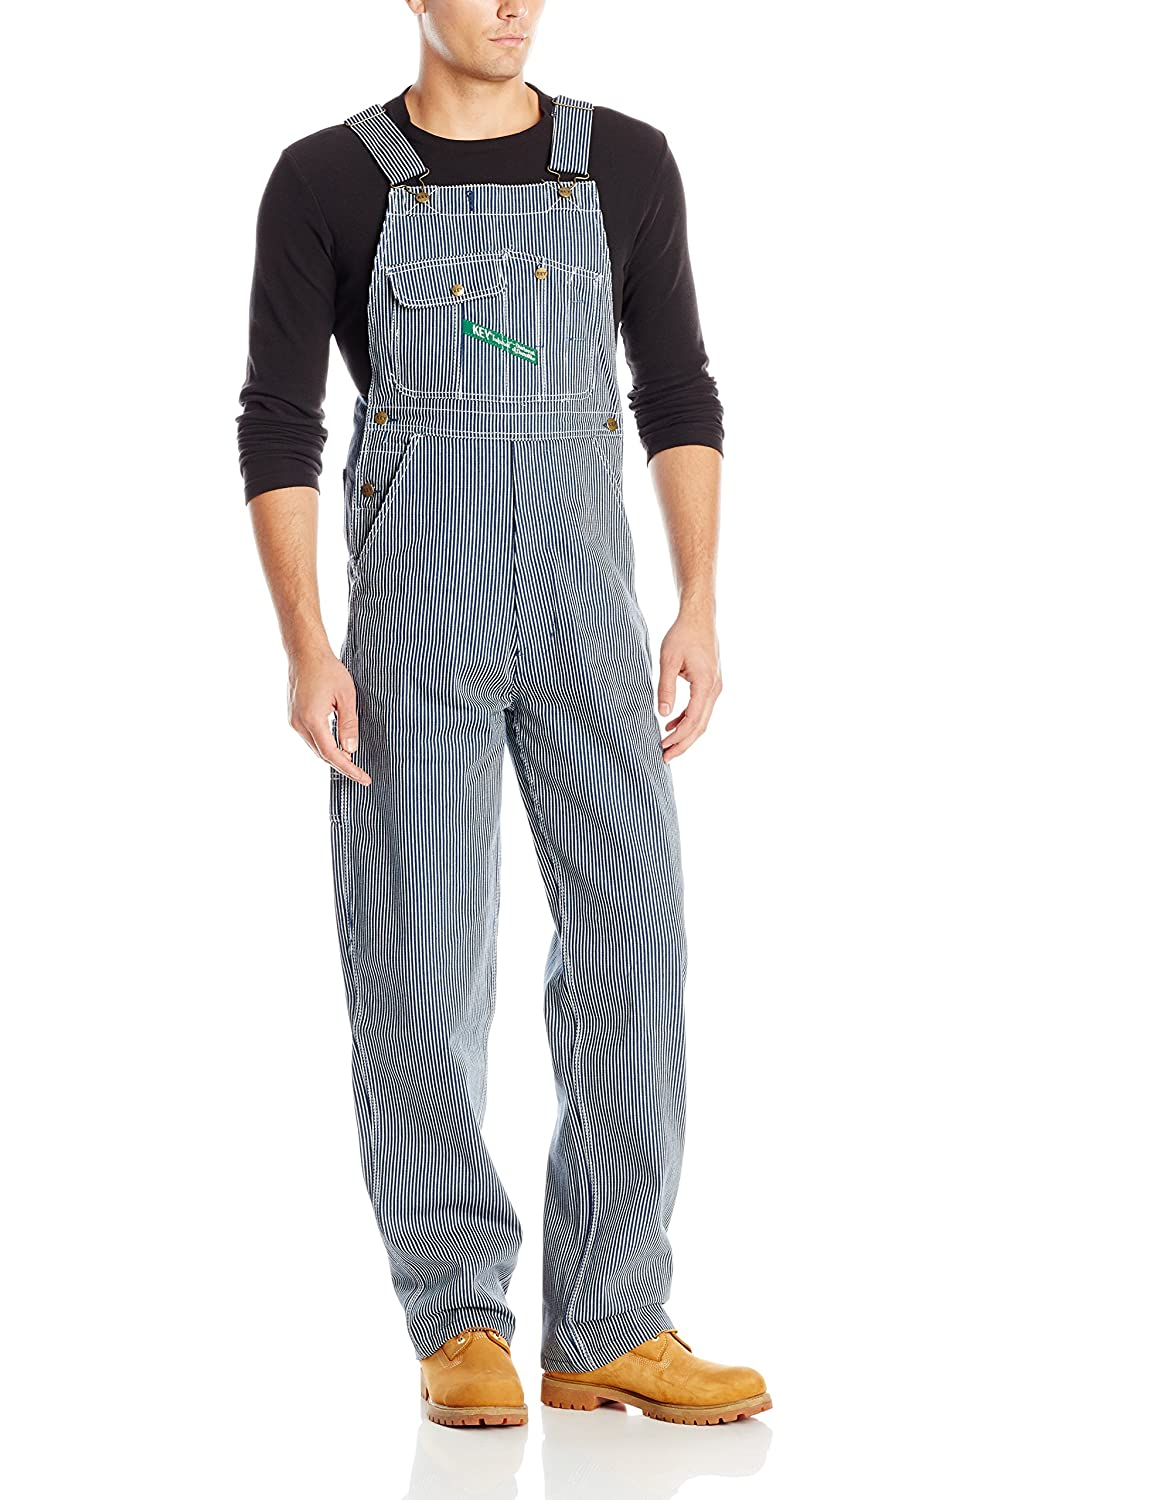 Men's Vintage Style Pants, Trousers, Jeans, Overalls Key Apparel Mens Hickory Stipe High Back Bib Overall $54.97 AT vintagedancer.com